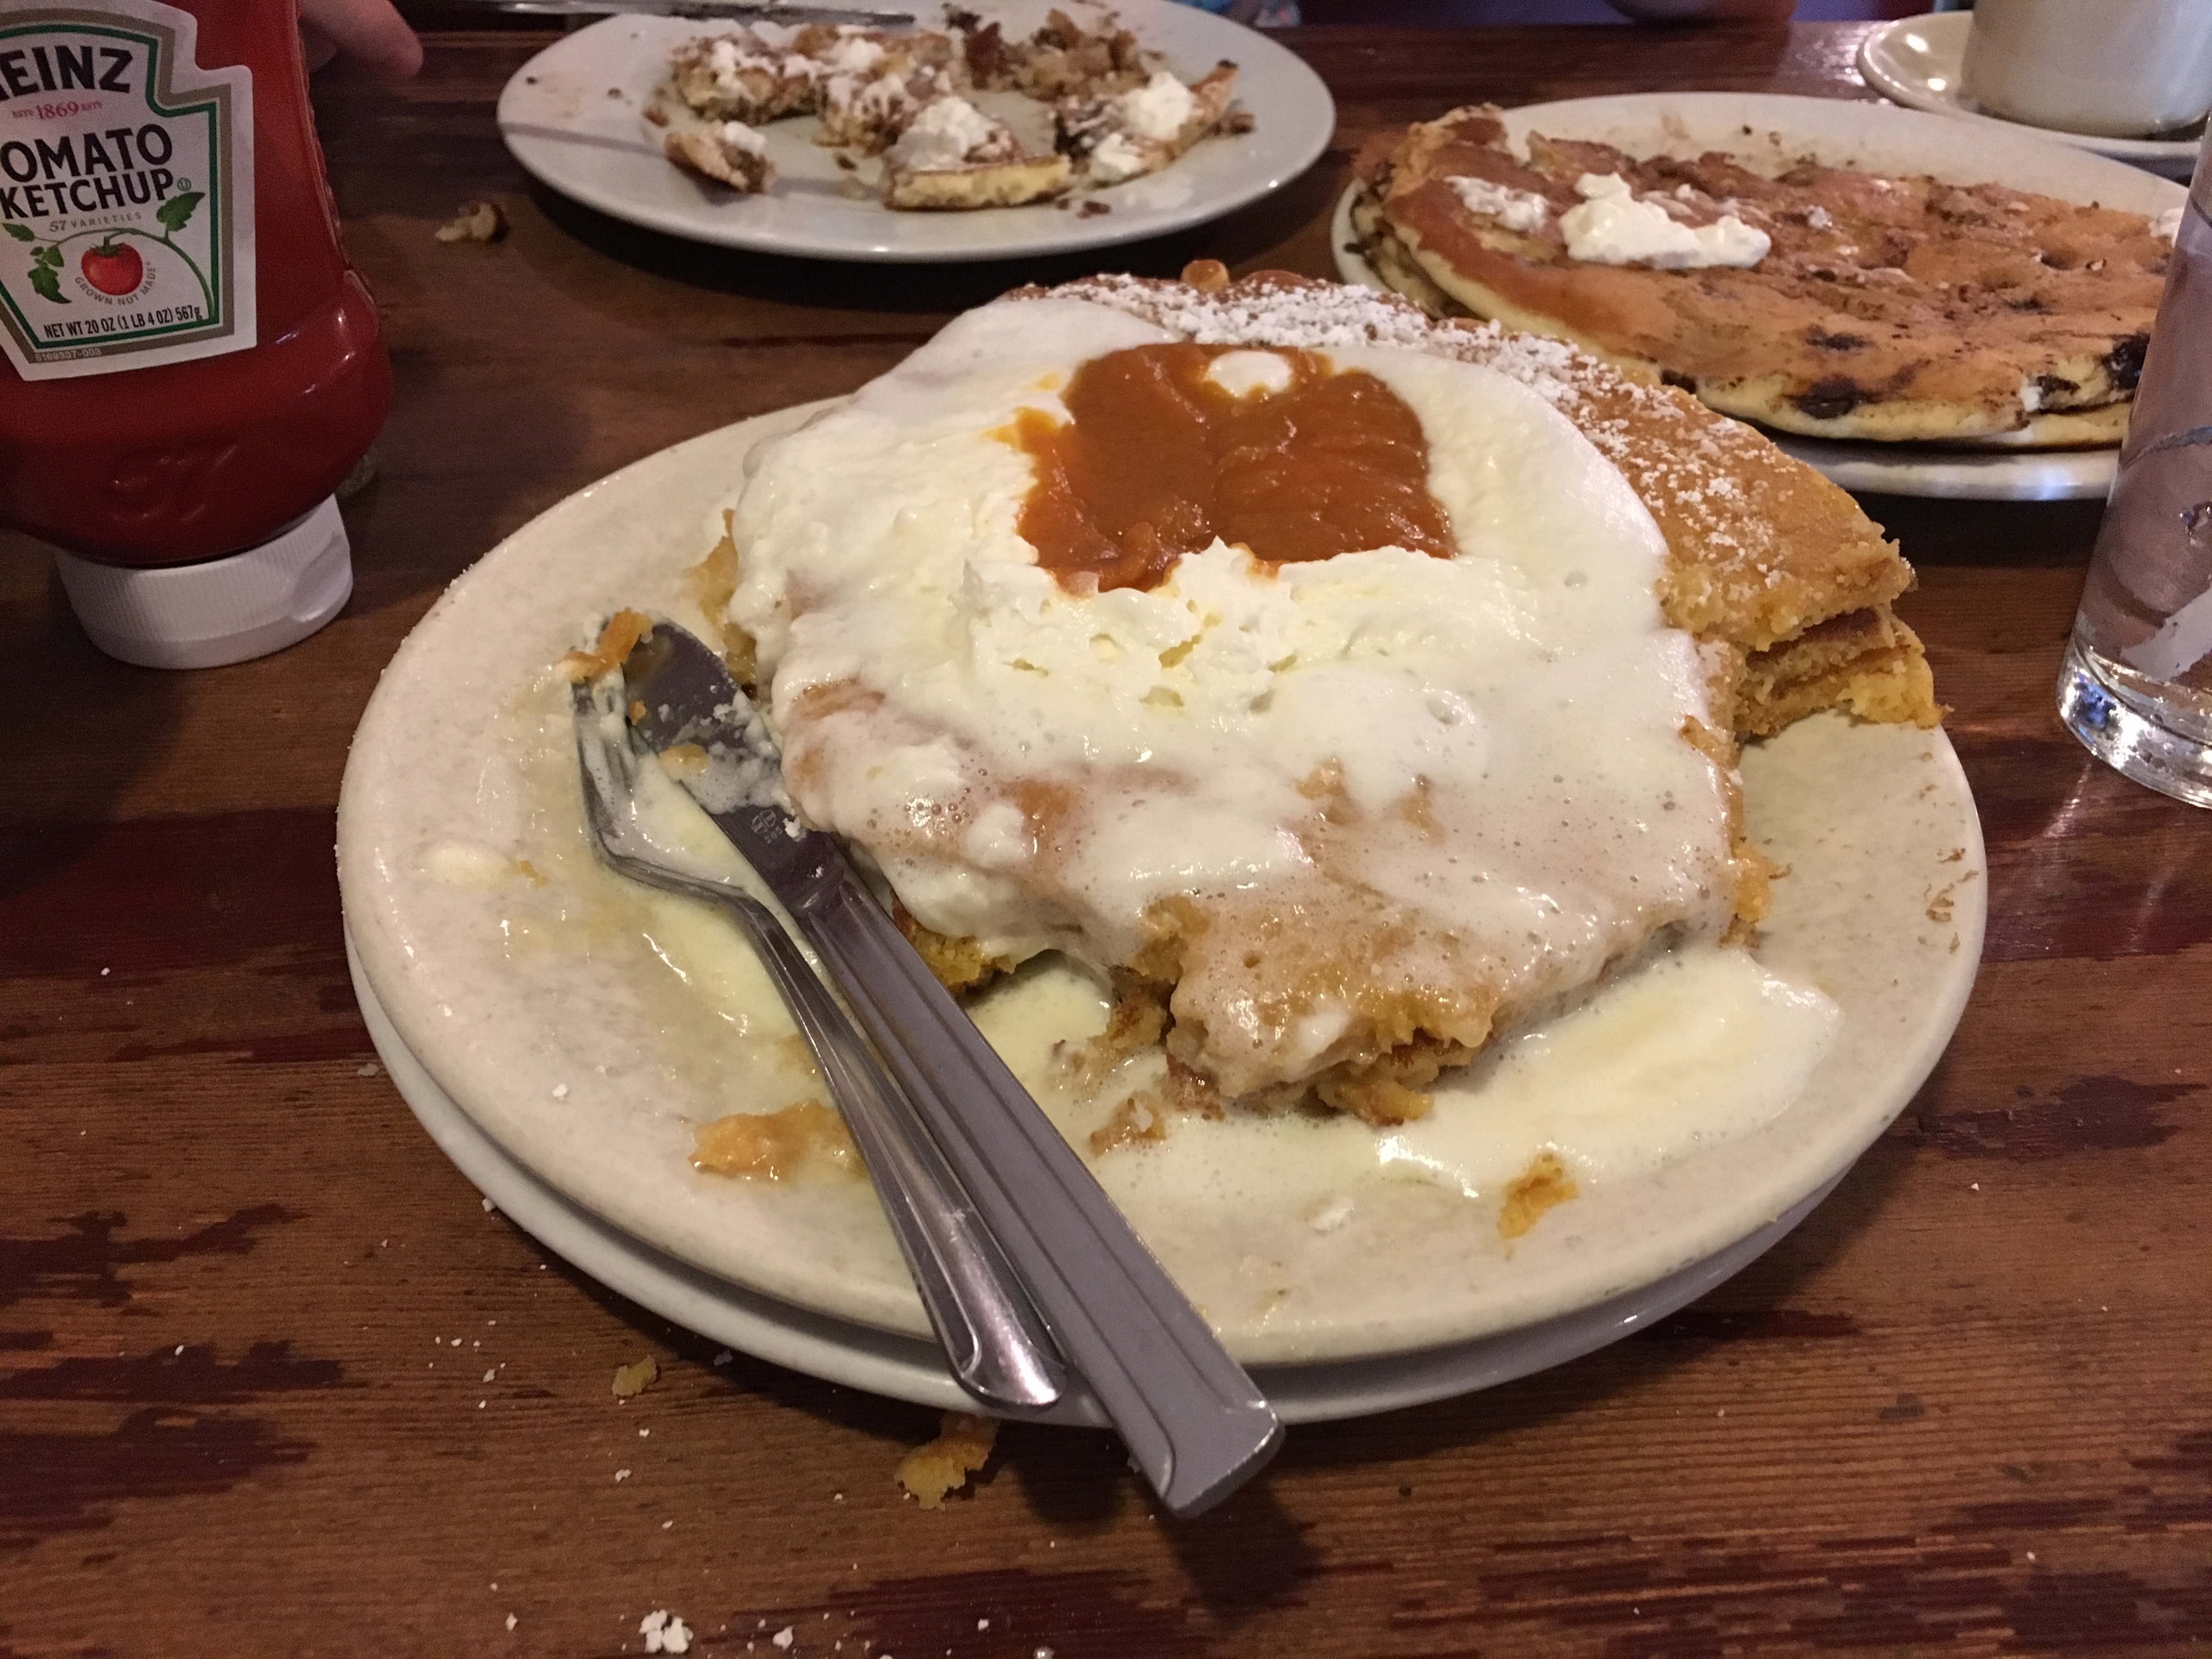 Los Angeles Food - beaten by pancakes